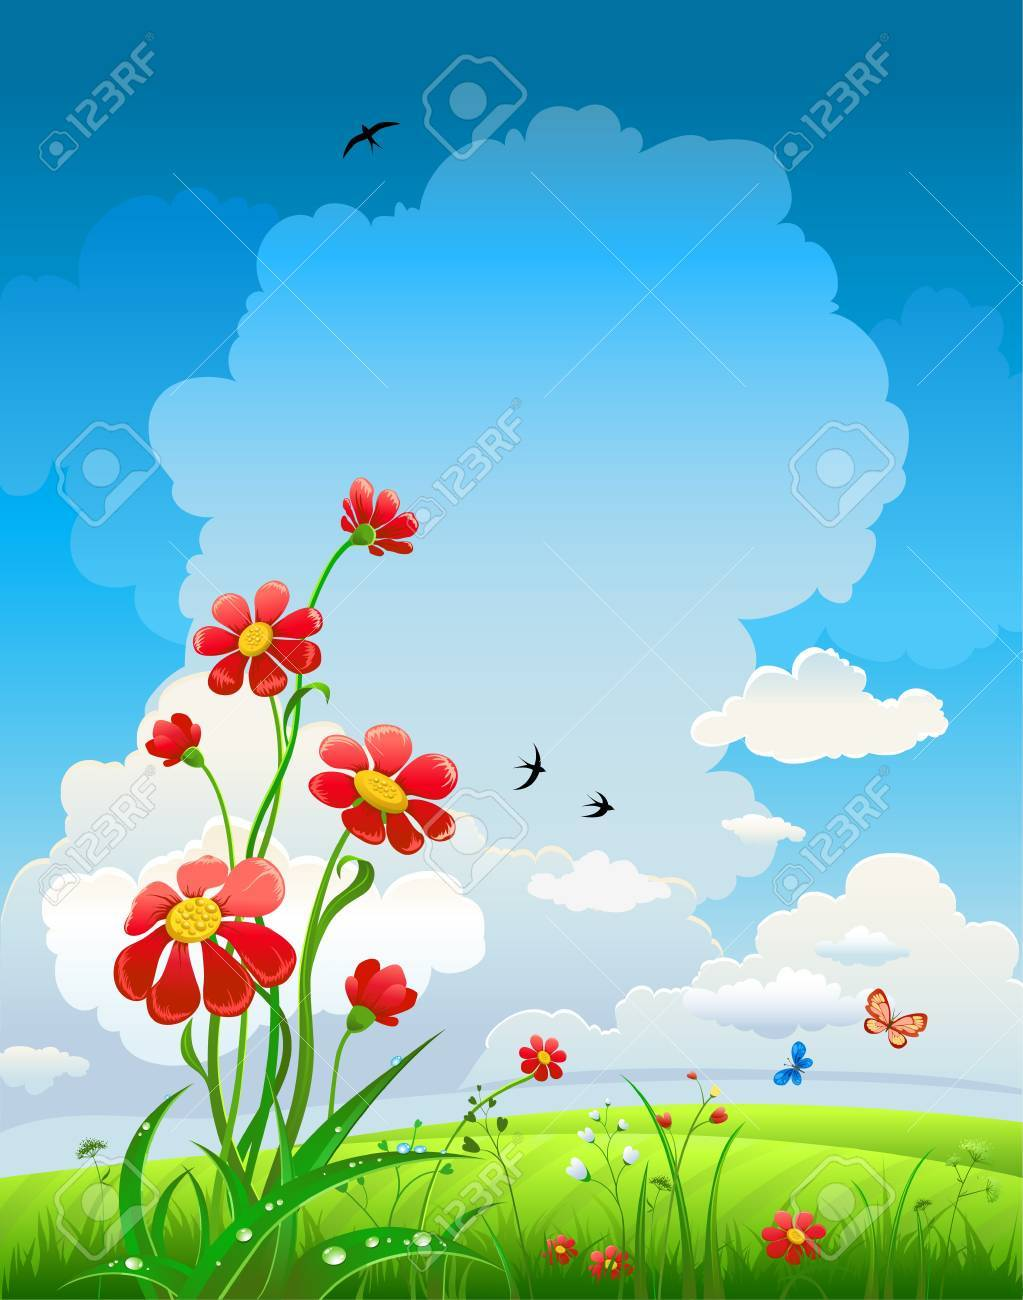 Summer natural background with flowers and blue sky Stock Vector - 20544572